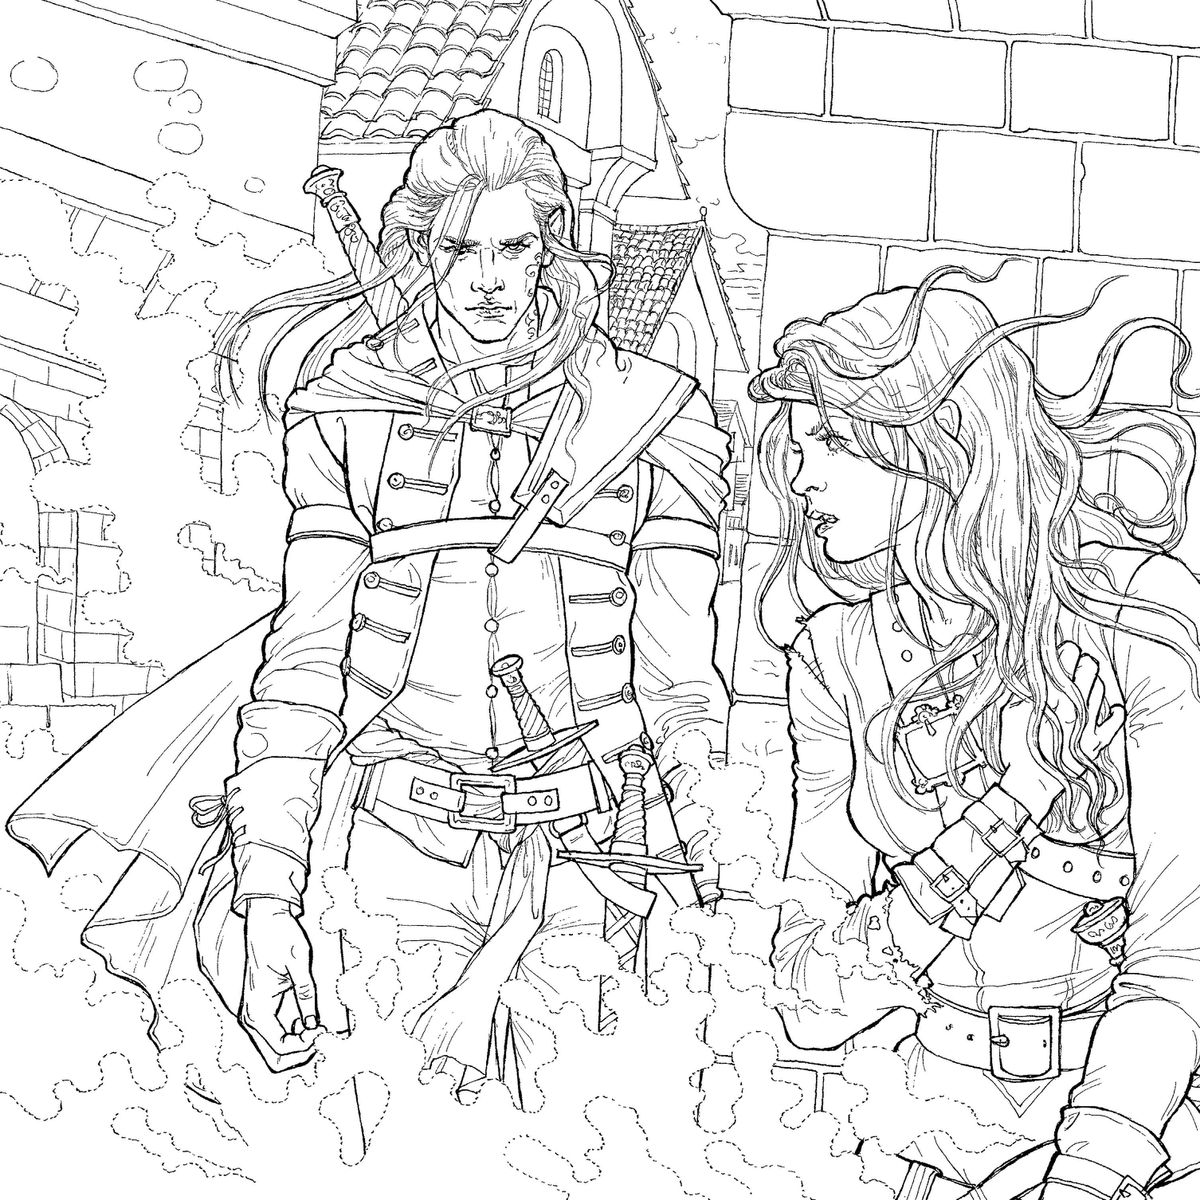 Throne of Glass Coloring Book | Throne of Glass Wiki | FANDOM ...